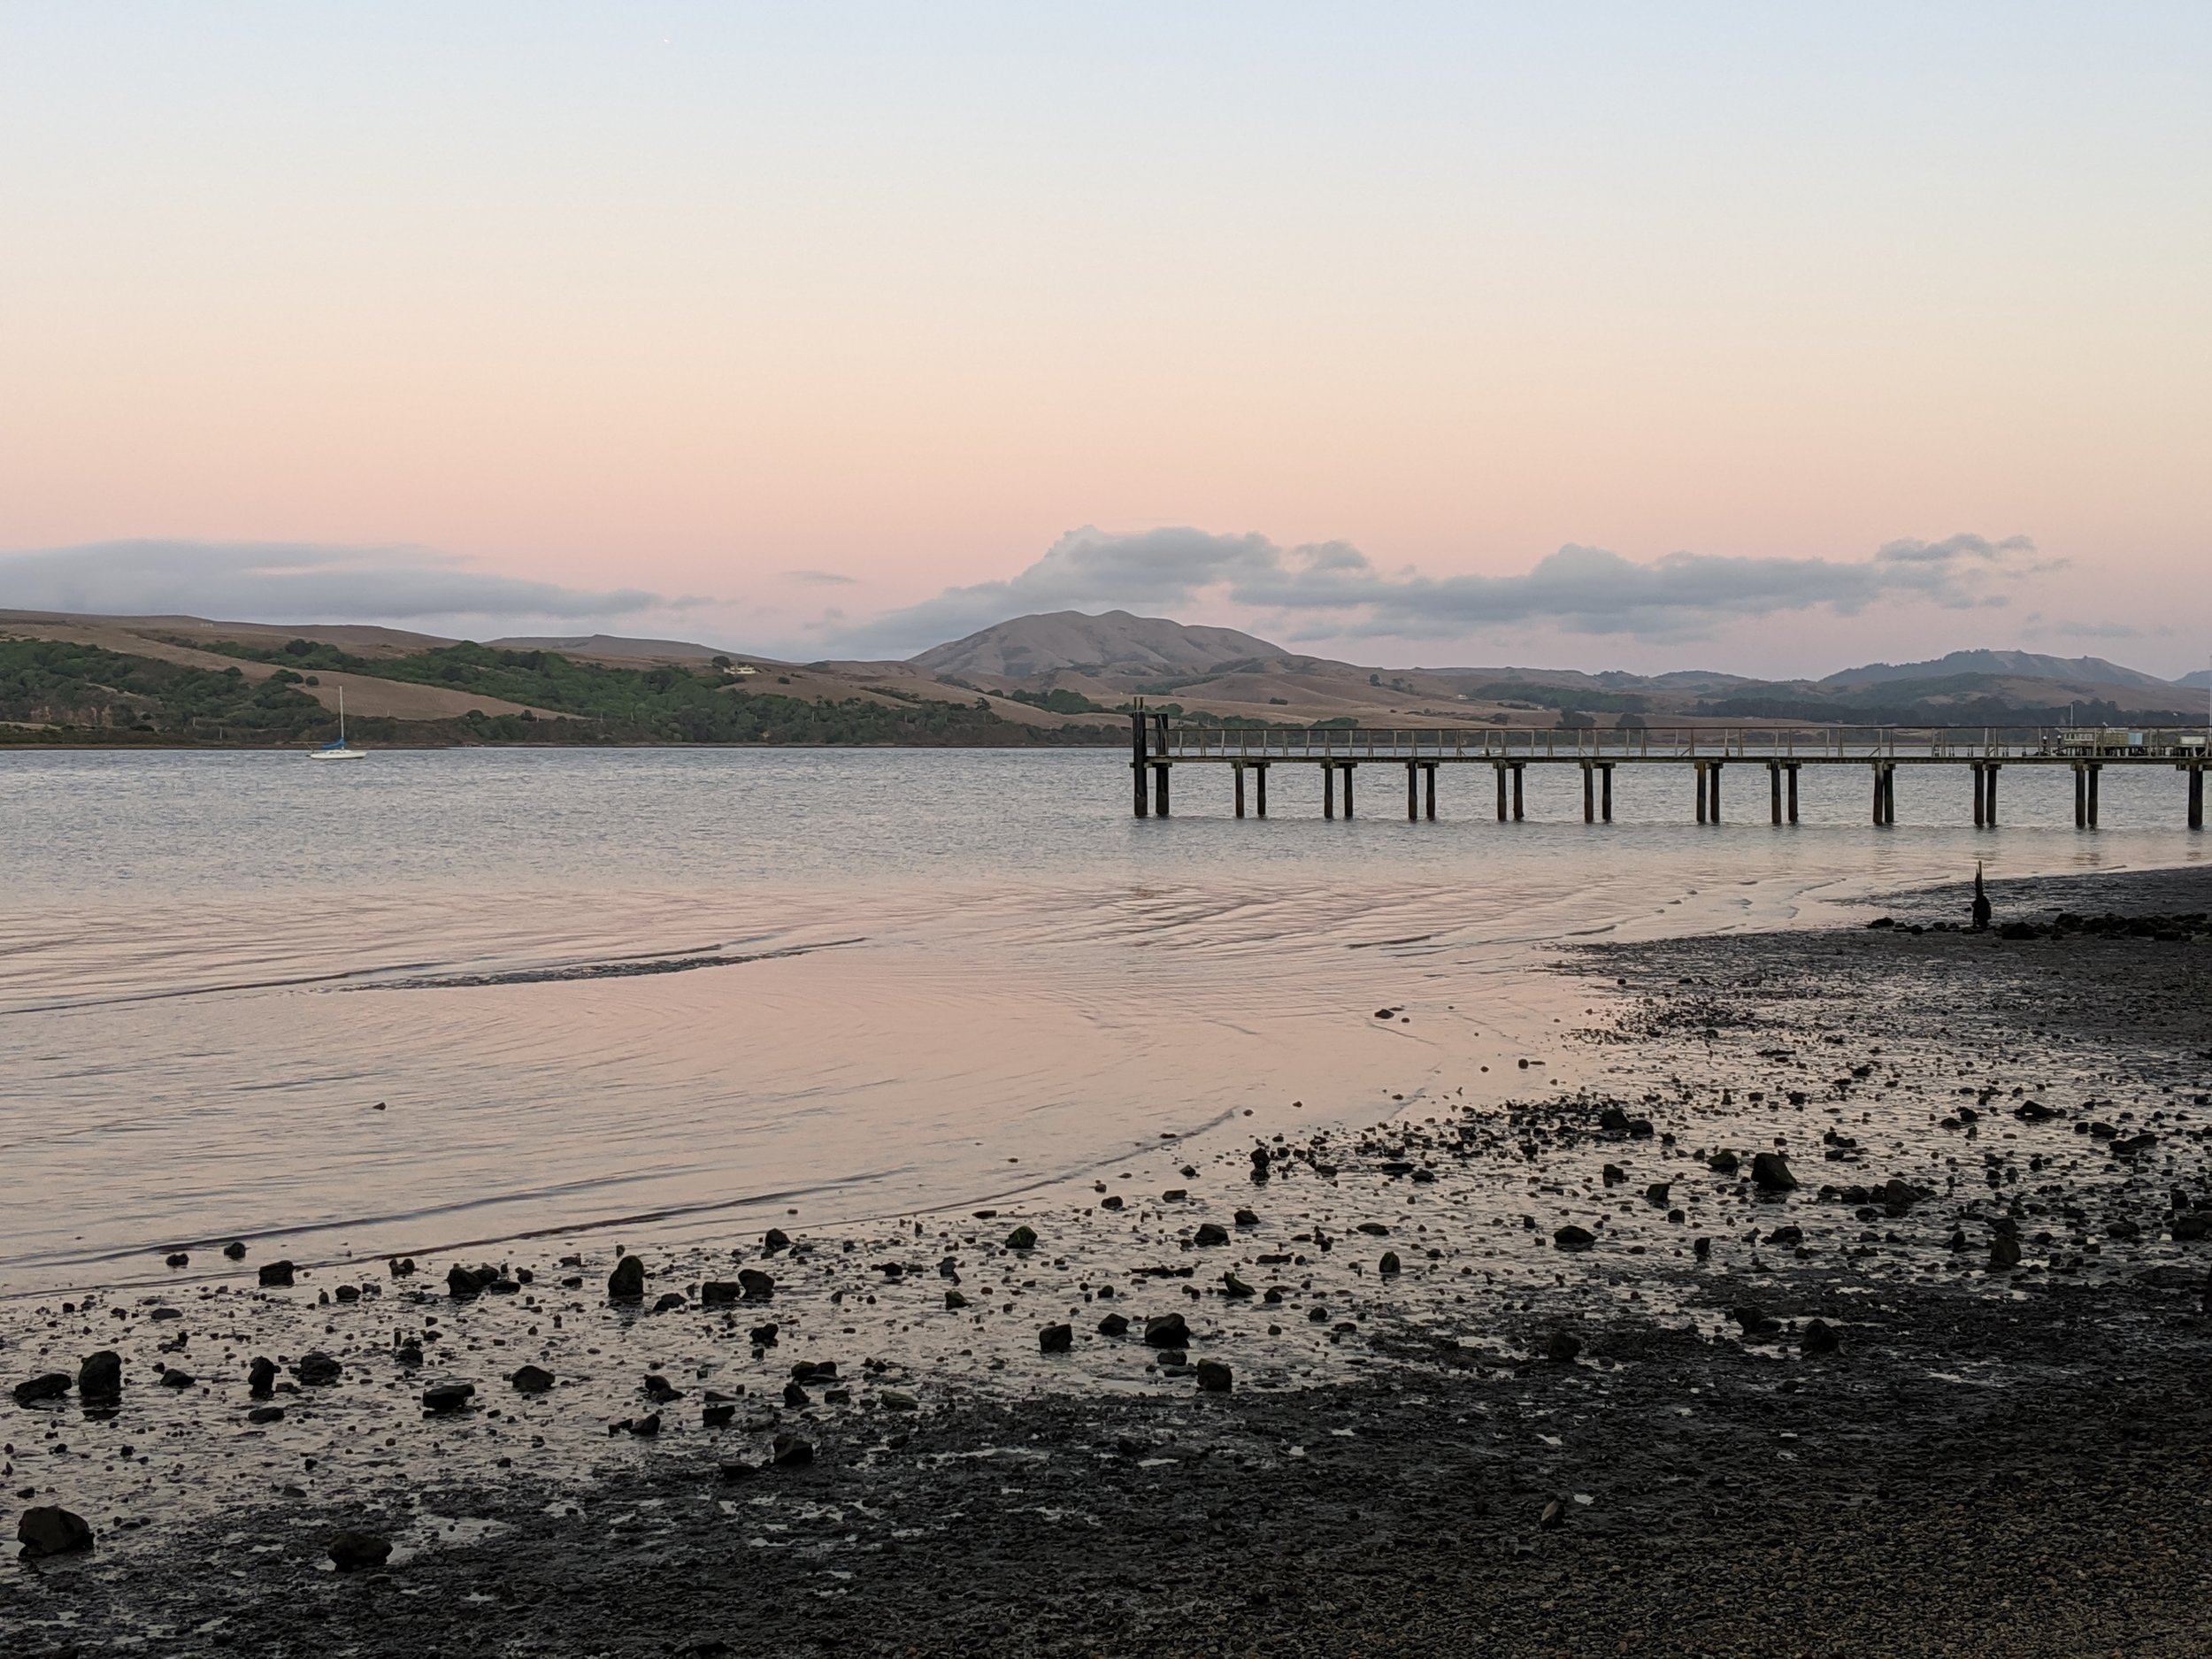 Sunset at Tomales Bay, Inverness, Ca